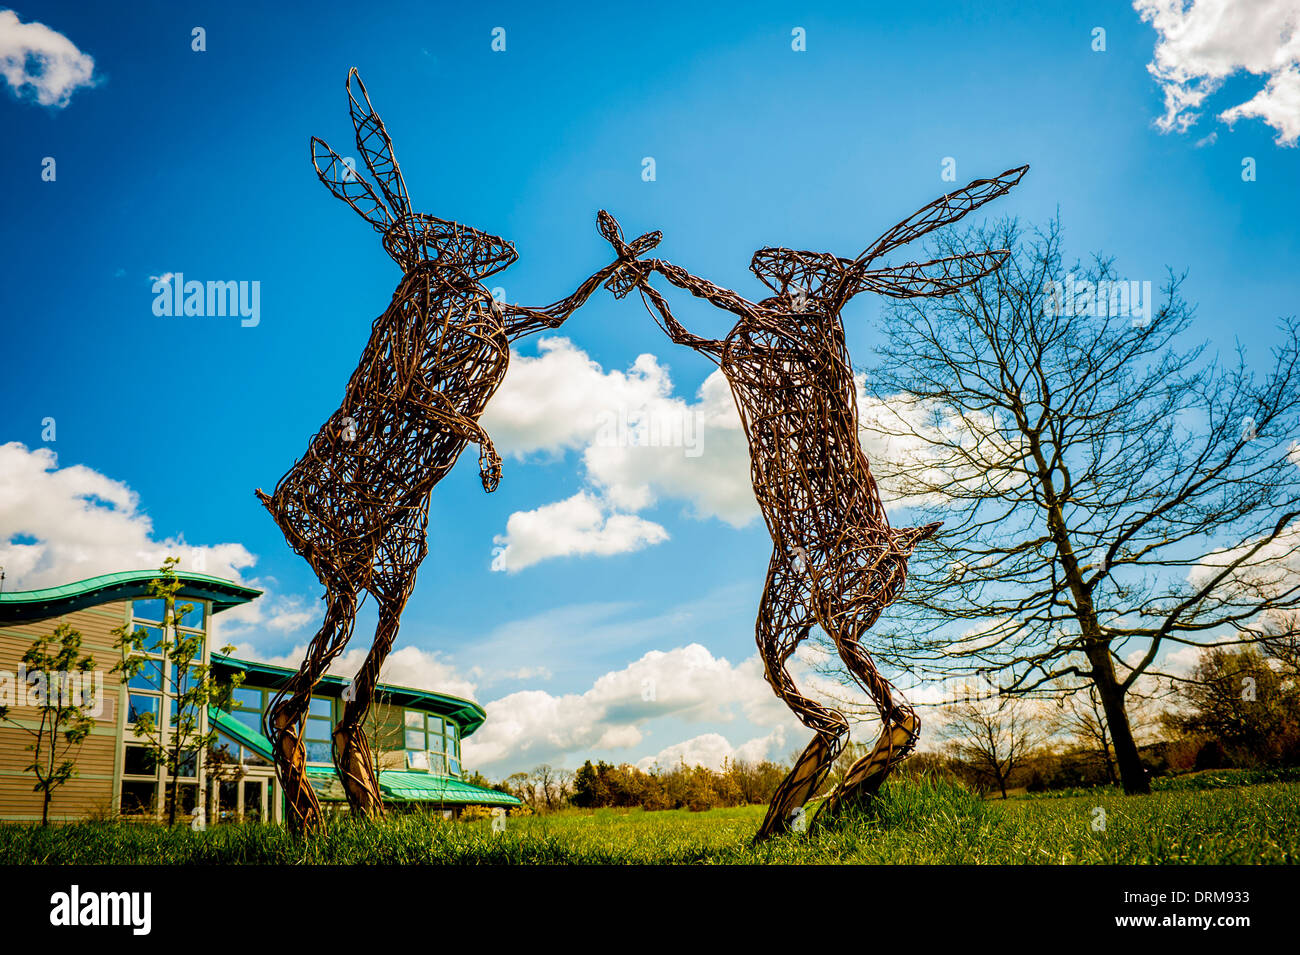 Fascinating Harrogate Rhs Stock Photos  Harrogate Rhs Stock Images  Alamy With Inspiring Willow Hares Sculpture By Phil Bradley At Harlow Carr Rhs Garden Harrogate  North Yorkshire With Beauteous China Garden Eastbourne Also Unusual Solar Garden Lights In Addition Vertical Garden Kit And Garden City Church As Well As Seaforde Gardens Additionally Garden Offices Studios From Alamycom With   Inspiring Harrogate Rhs Stock Photos  Harrogate Rhs Stock Images  Alamy With Beauteous Willow Hares Sculpture By Phil Bradley At Harlow Carr Rhs Garden Harrogate  North Yorkshire And Fascinating China Garden Eastbourne Also Unusual Solar Garden Lights In Addition Vertical Garden Kit From Alamycom